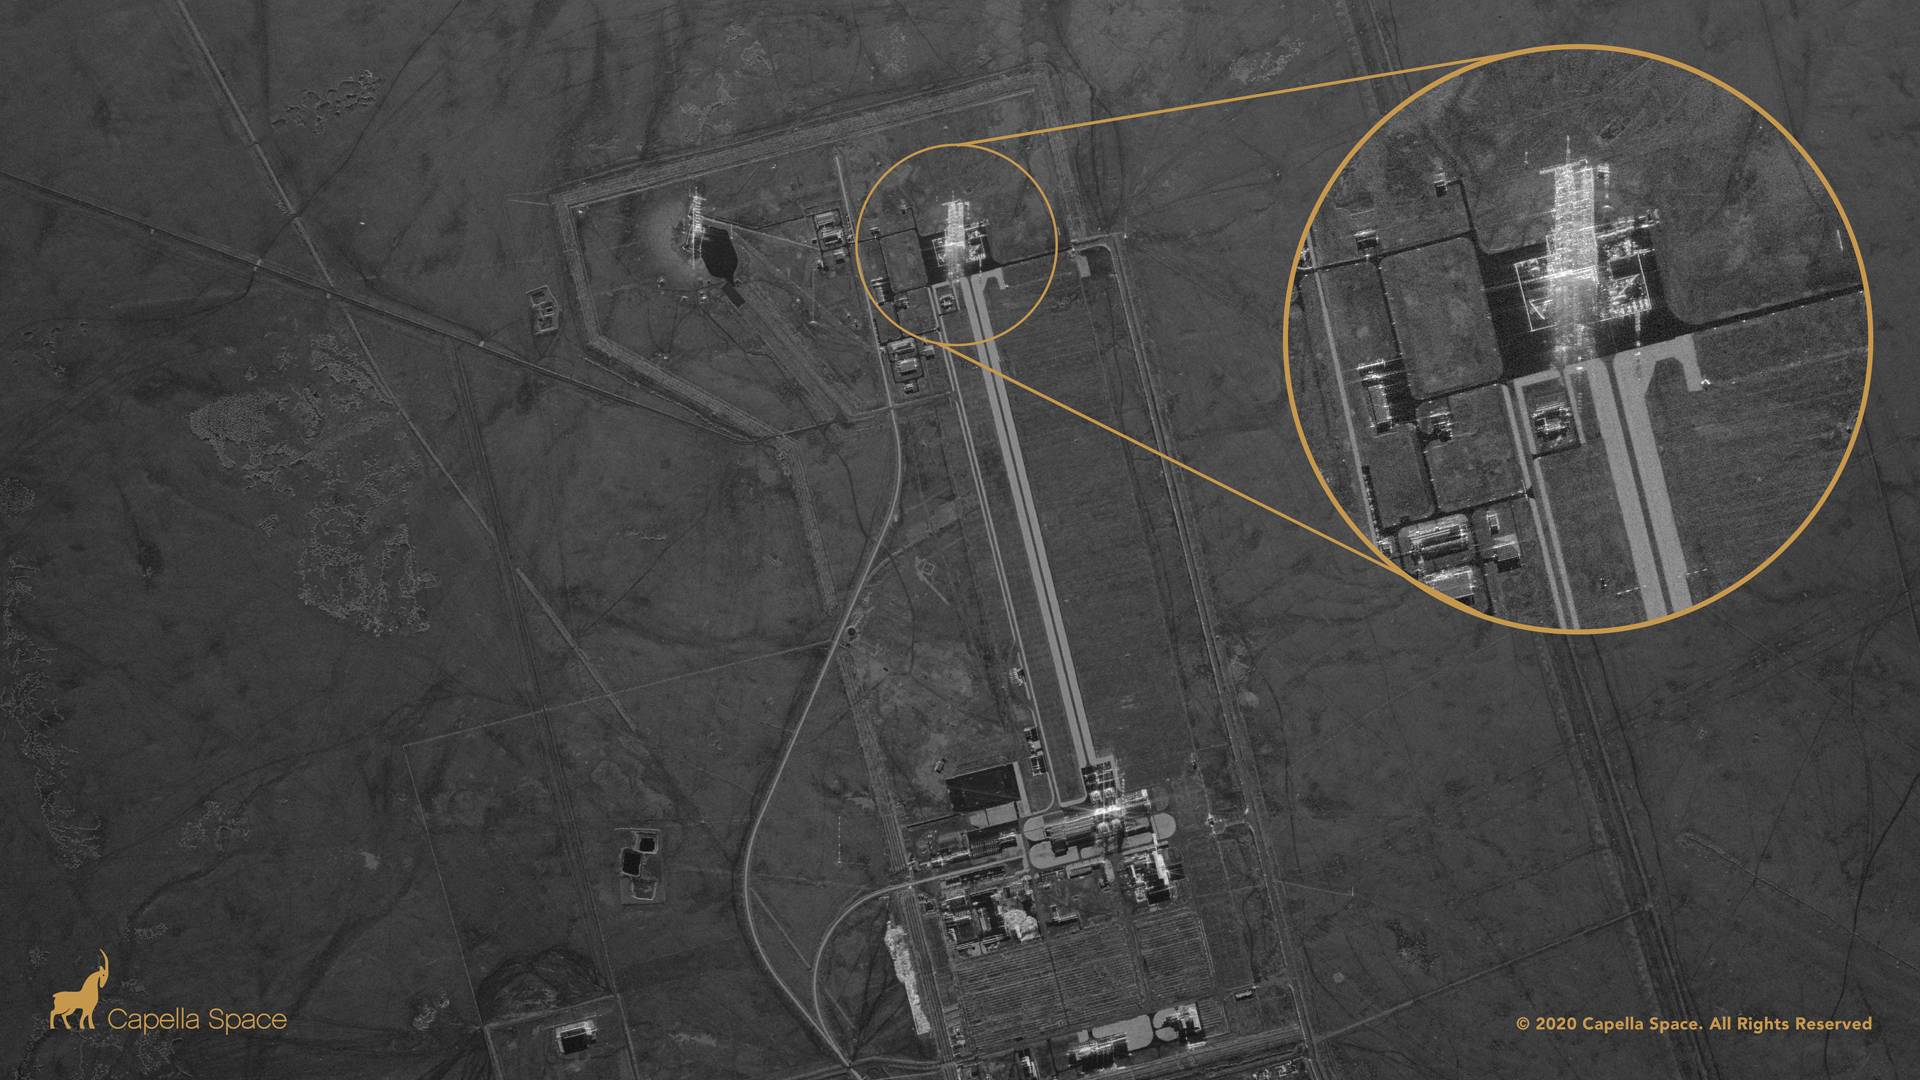 The launch towers are visible in this image of China's Jiuquan spaceport